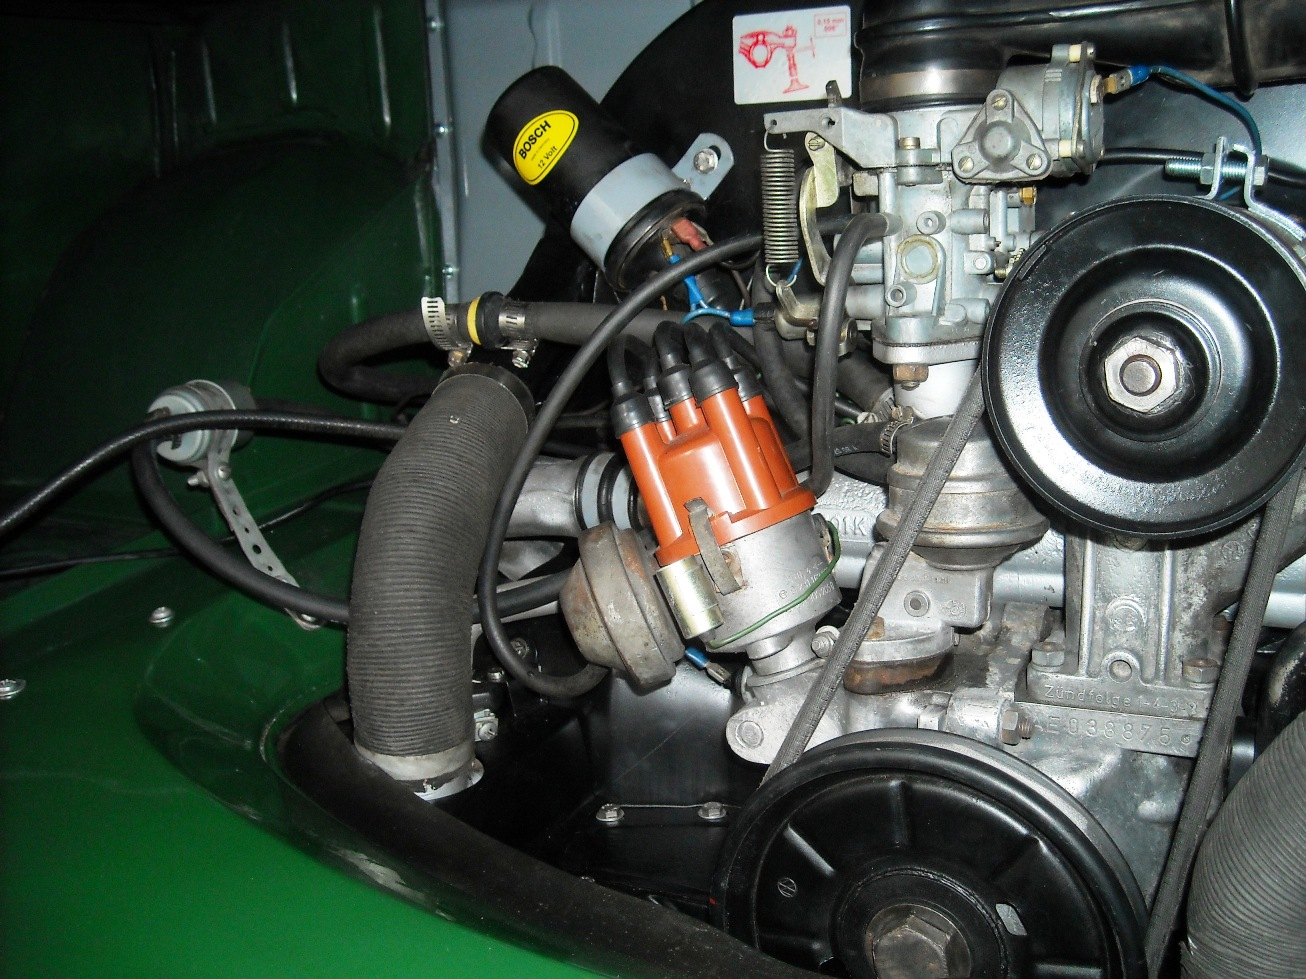 Bay Window Bus View Topic Is This Fuel Filter 2010 Dodge Journey Location Image May Have Been Reduced In Size Click To Fullscreen